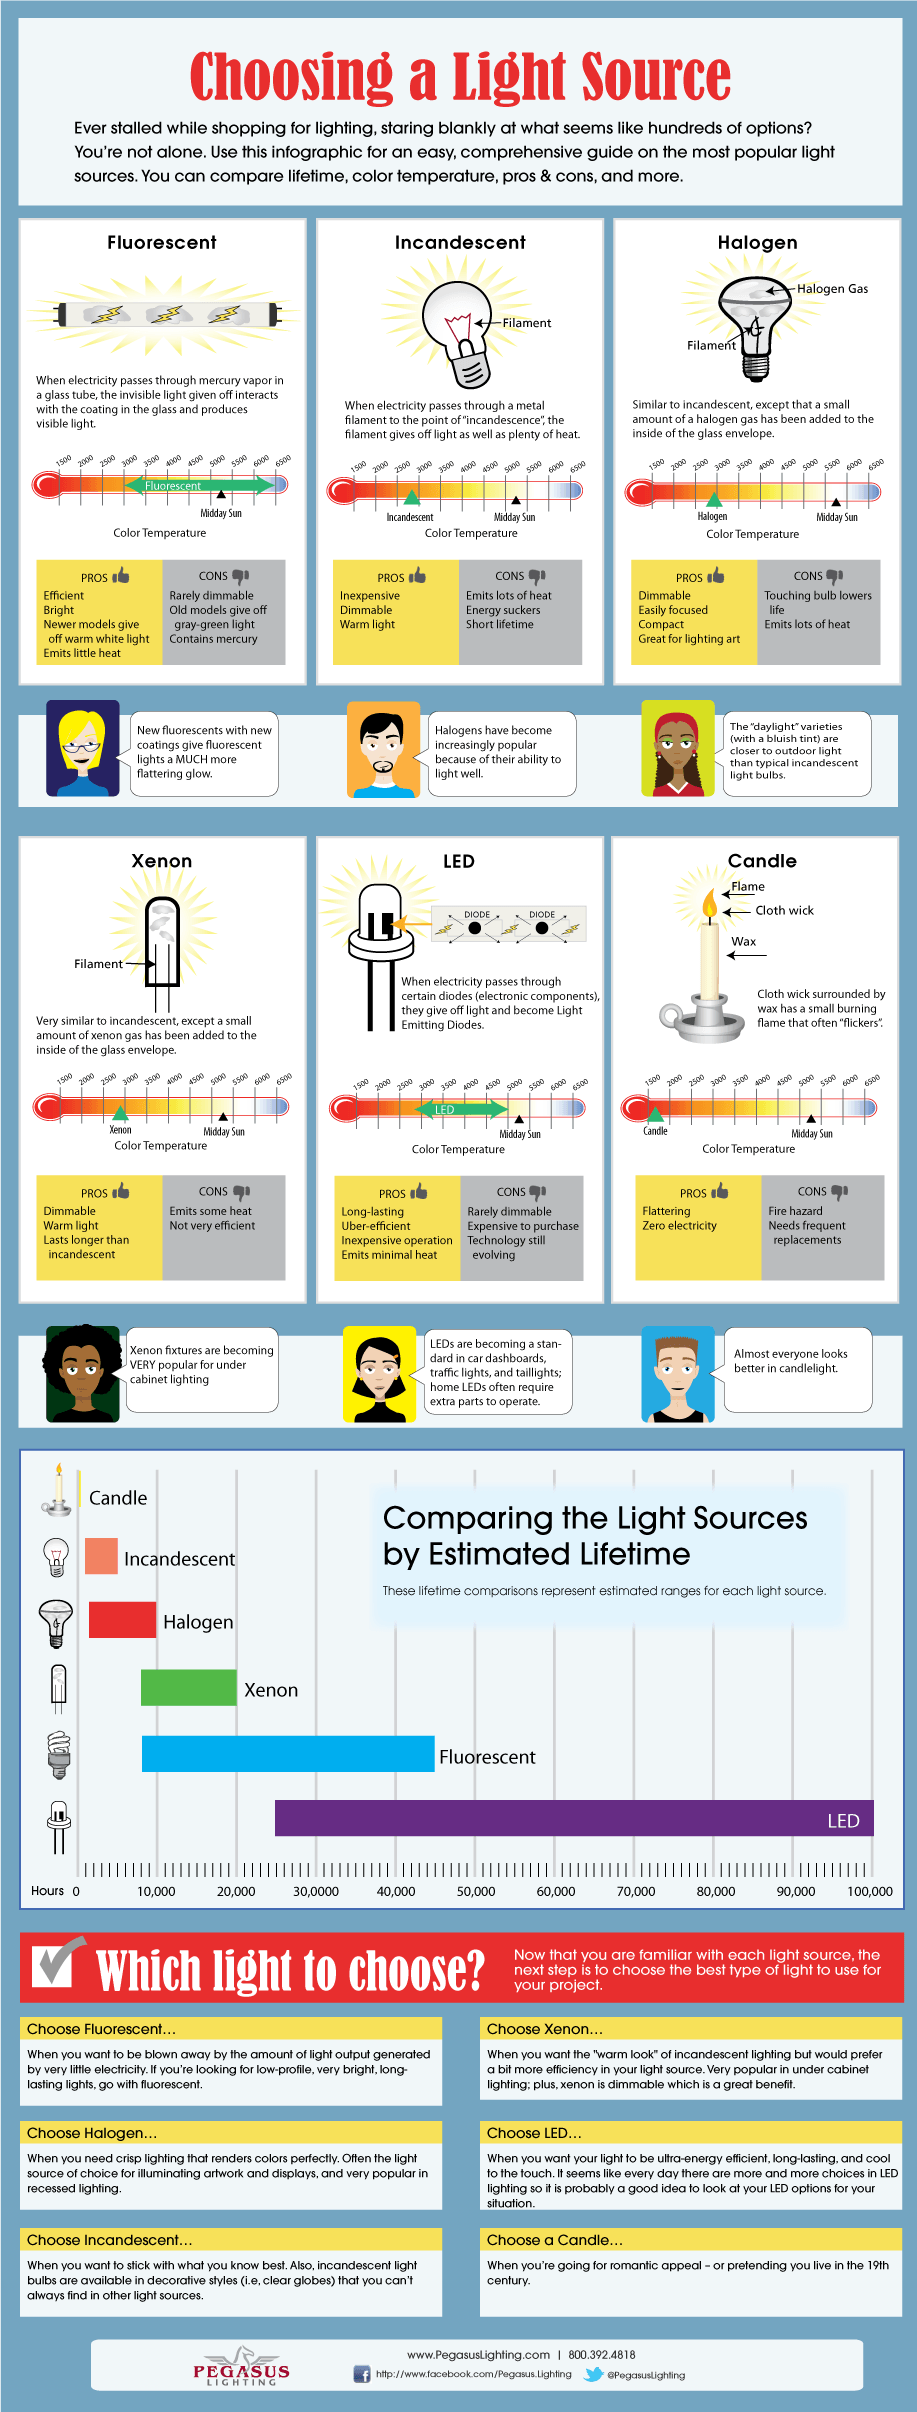 Comparing light sources, an infographic